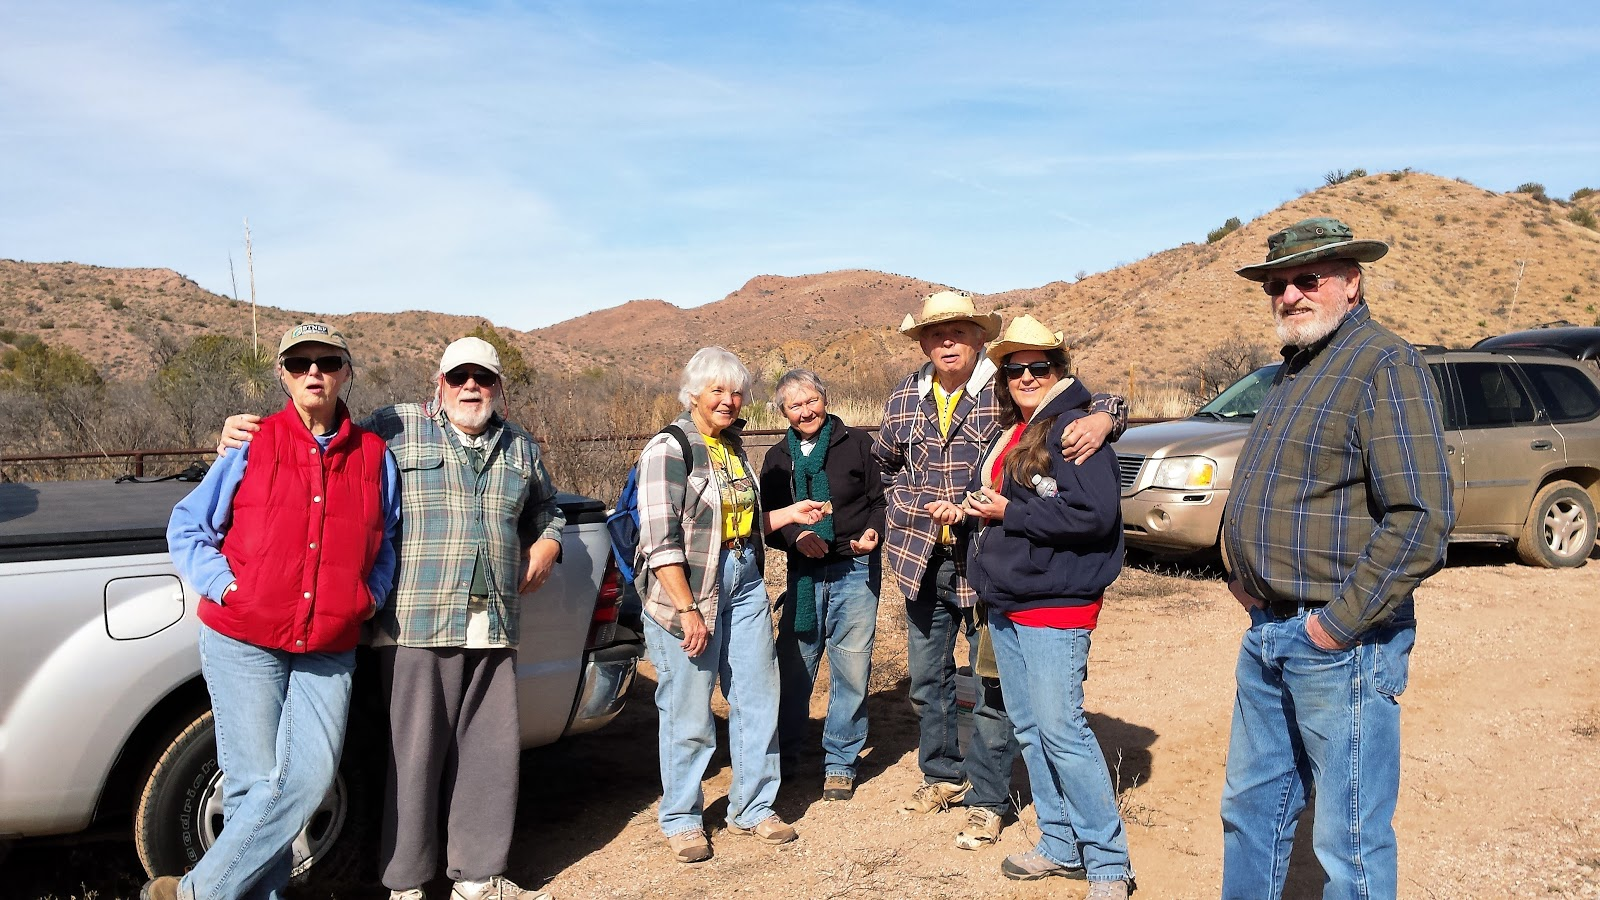 New mexico grant county redrock - It Was A Fun Spot To Collect And Explore We All Collected Our Buckets And Bags And Headed Back To The Parking Area Smiles All Around